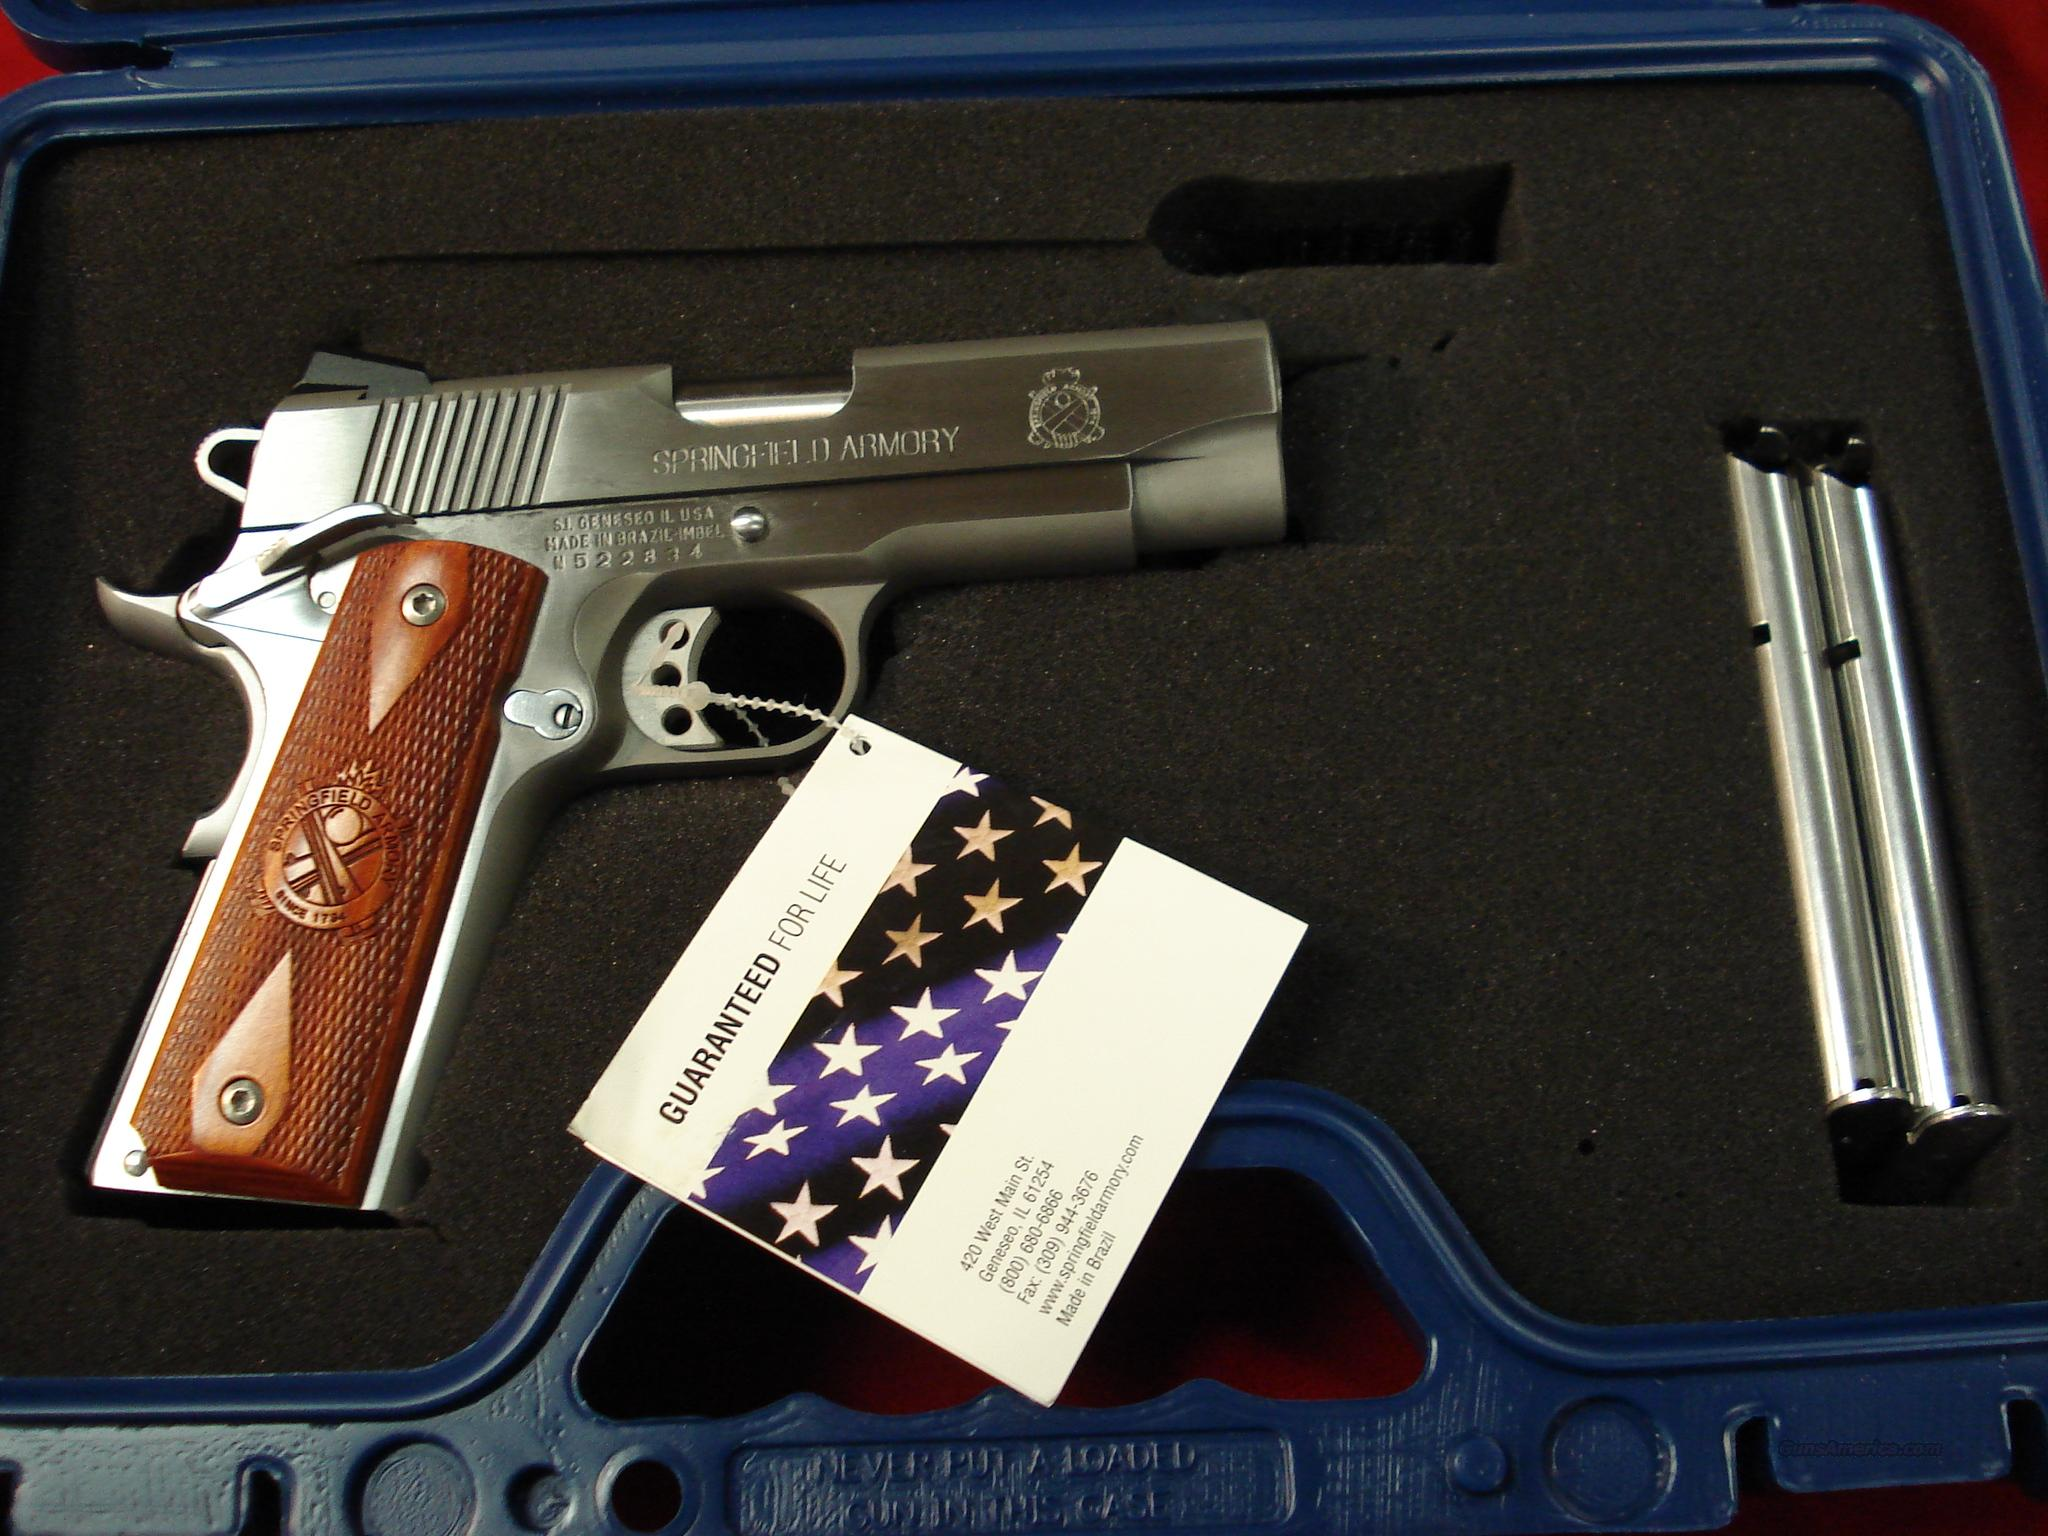 SPRINGFIELD ARMORY CHAMP. S/S W/NIGHT SIGHTS (PX9142LP)  Guns > Pistols > Springfield Armory Pistols > 1911 Type